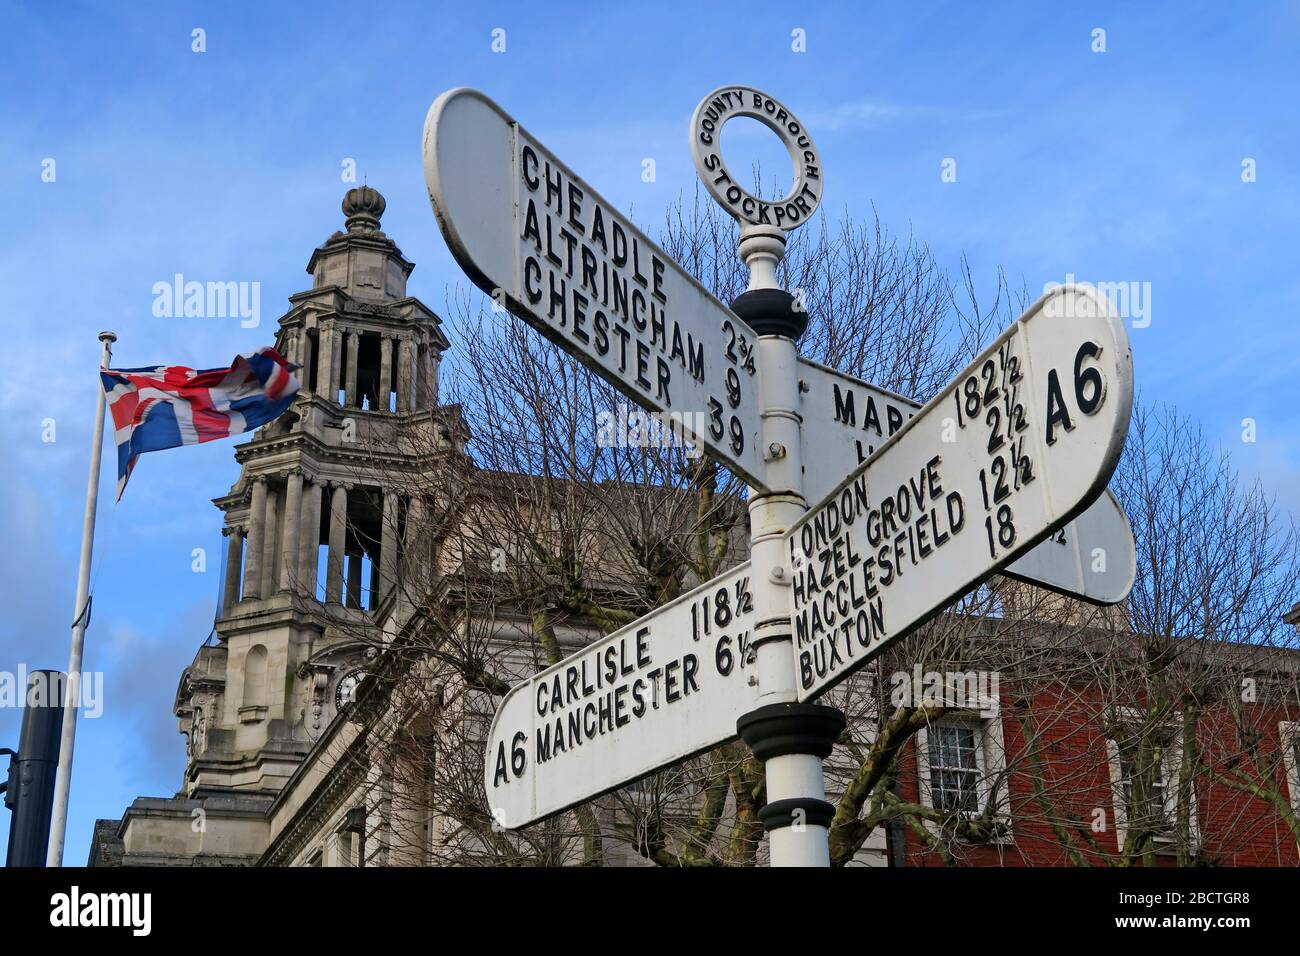 HotpixUK,@HotpixUk,GoTonySmith,Greater Manchester,Manchester,Cheshire,England,UK,town,posts,Stockport A6 fingerposts,Cheadle,Chester,London,Buxton,Macclesfield,Carlisle,English,white,black,flag,British,town hall,A6 sign,A6 Signpost